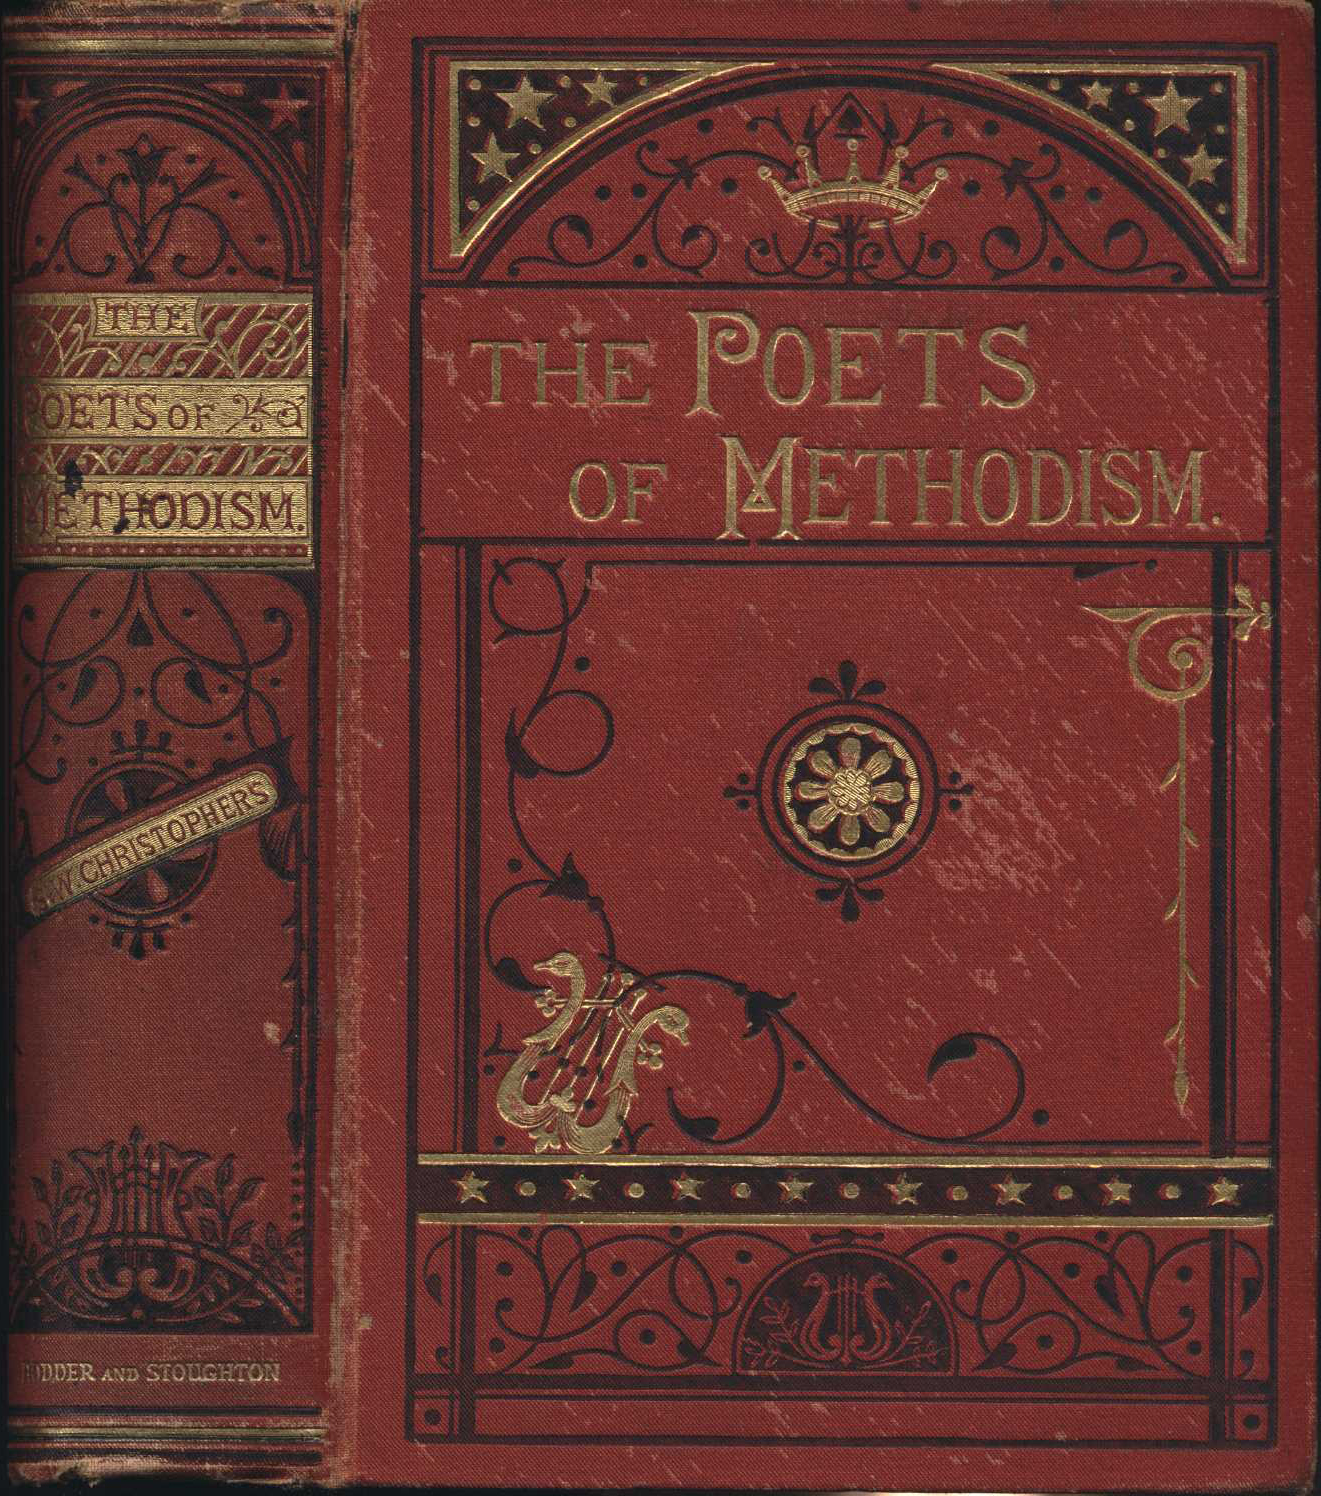 S.W. Christophers. The poets of Methodism. London: Hodder and Stoughton, 1877.